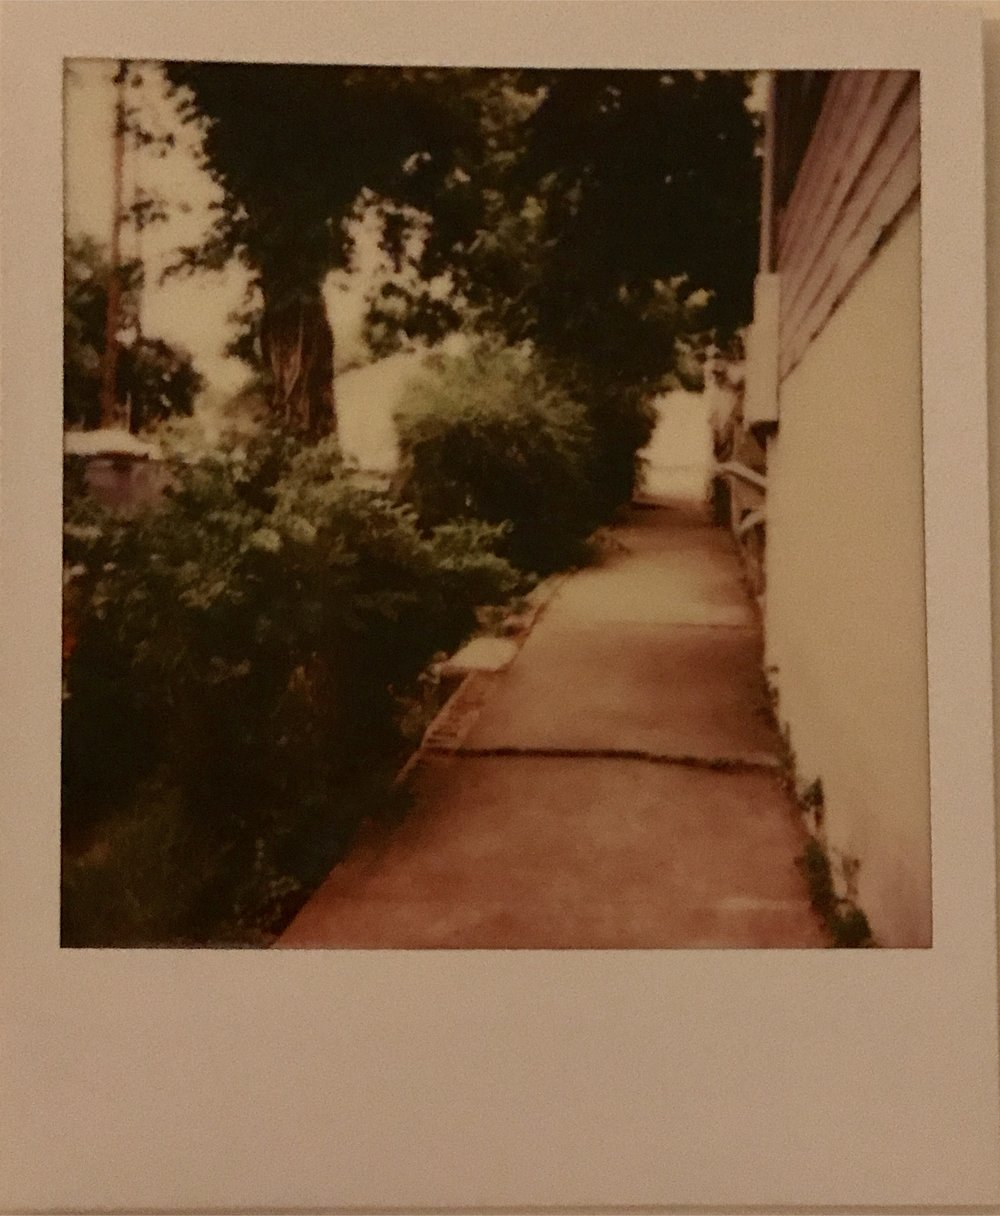 waiting in line for BBQ, alley, vintage polaroid